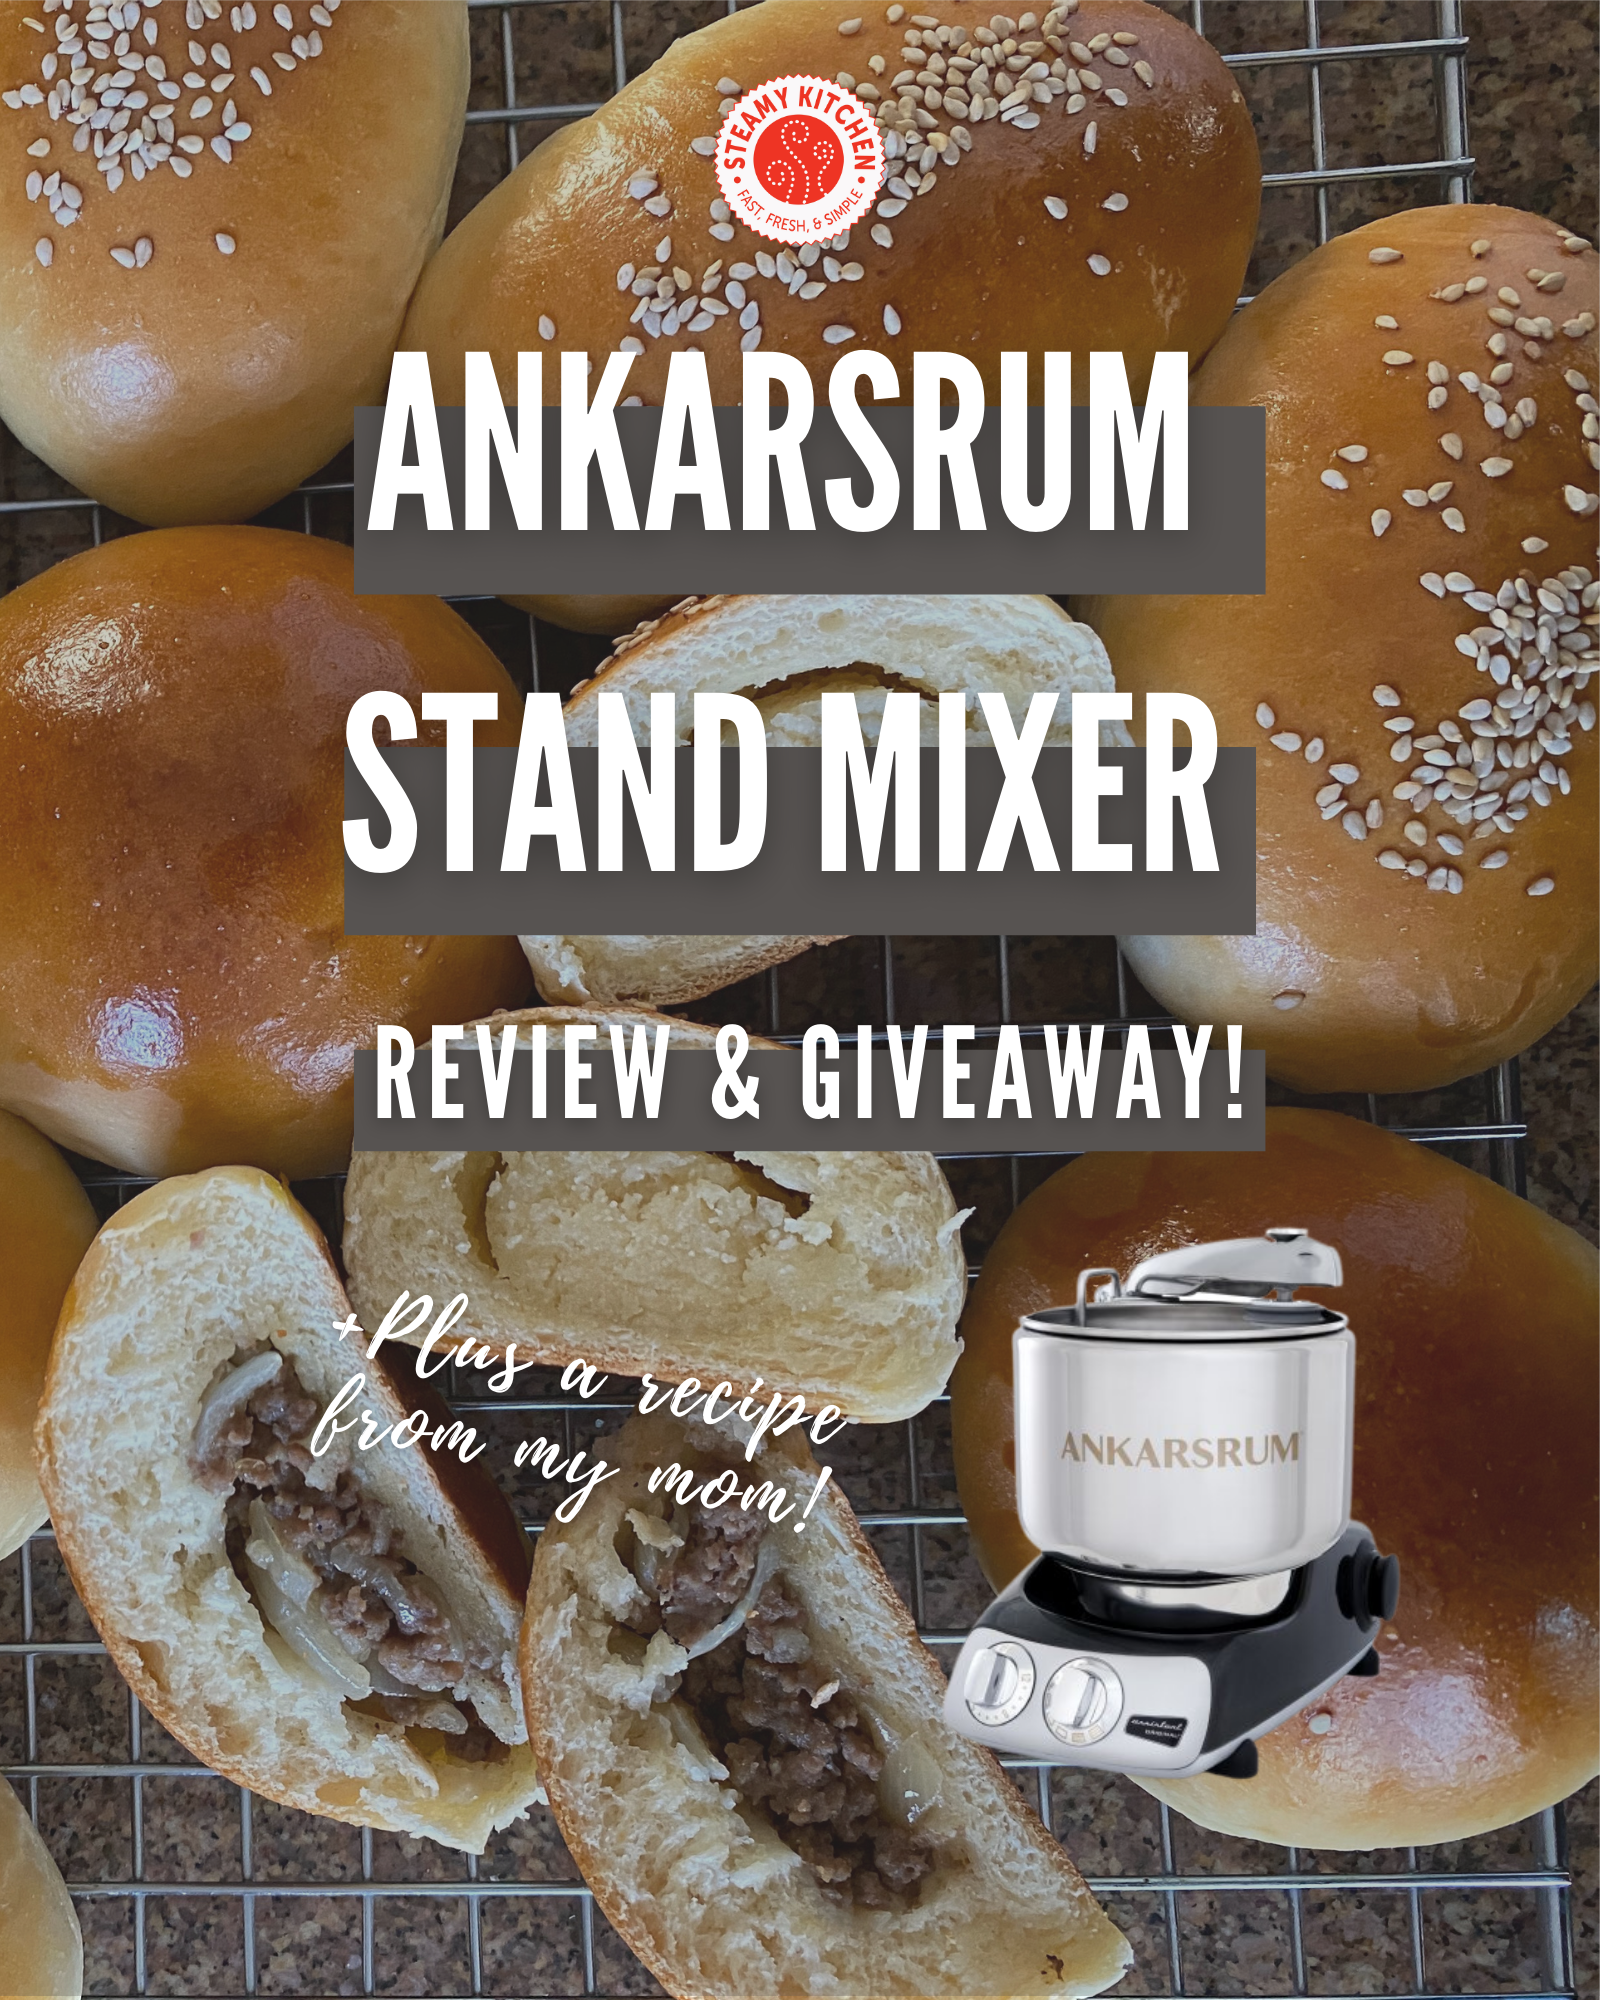 Ankarsrum Assistent Original Stand Mixer Review and GiveawayEnds in 88 days.